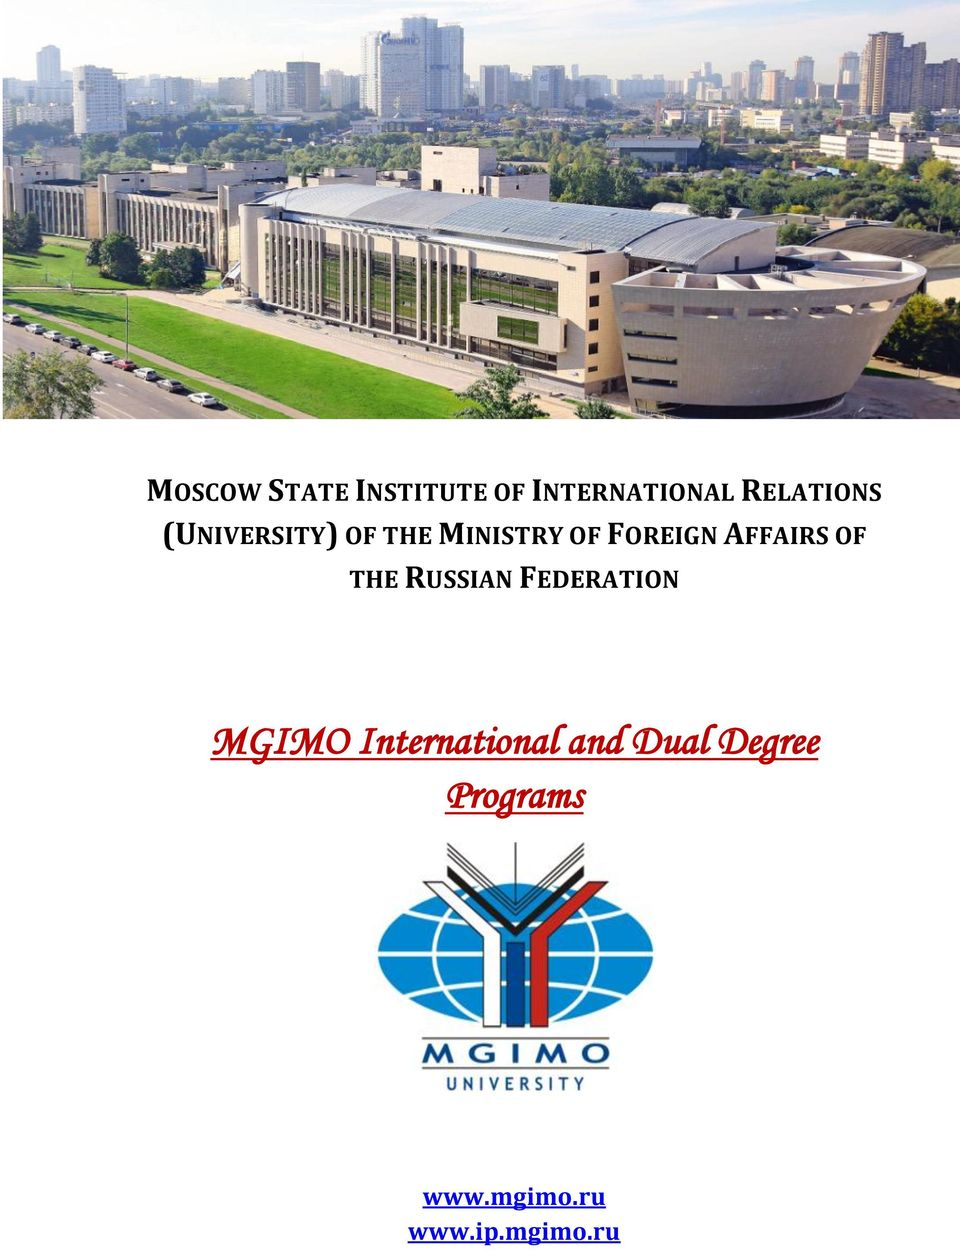 OF THE RUSSIAN FEDERATION MGIMO International and